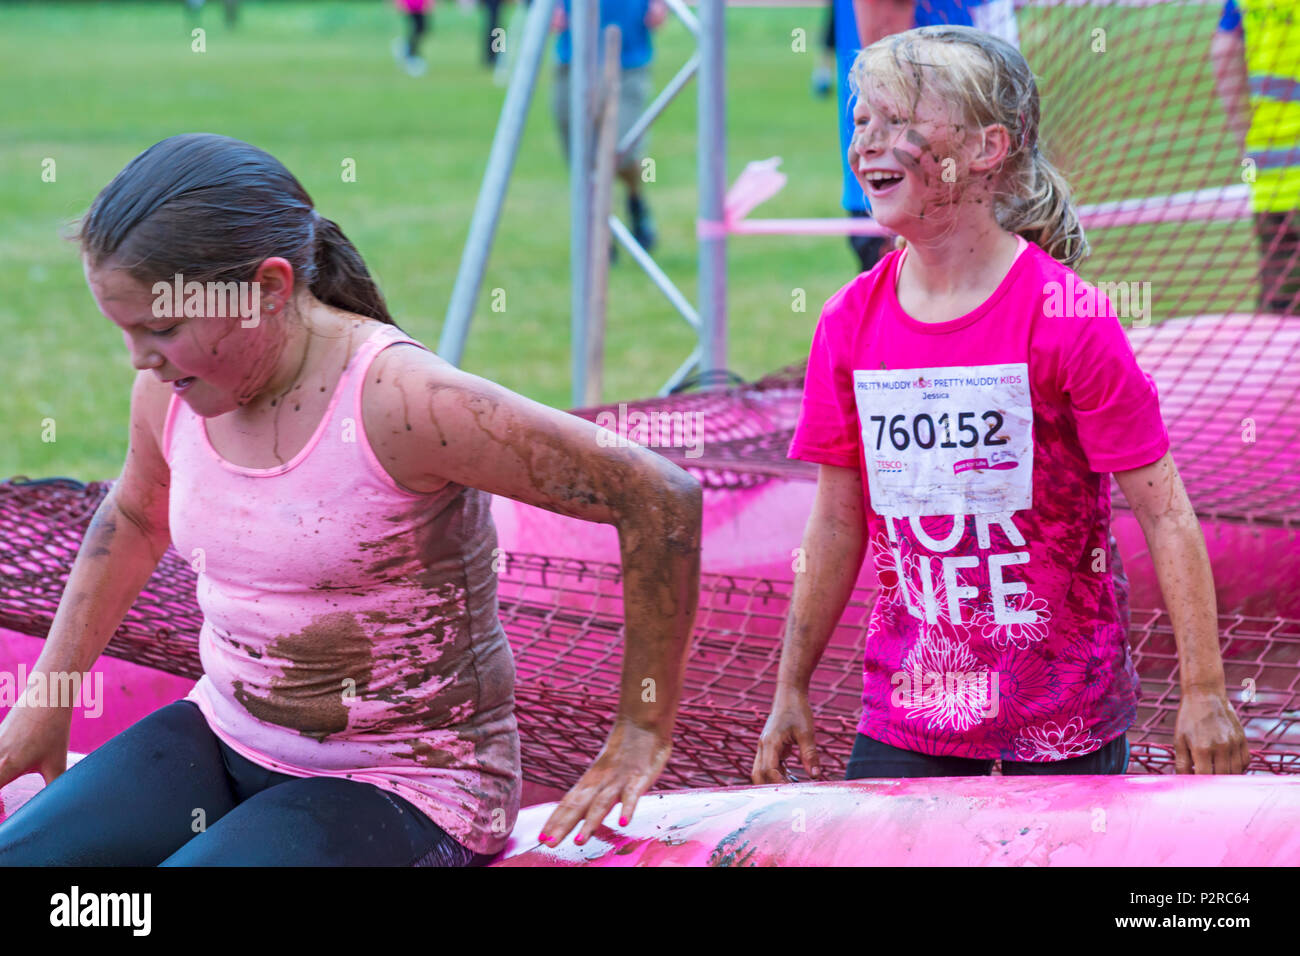 Baiter Park, Poole, Dorset, UK  16th June 2018  Race for Life Pretty